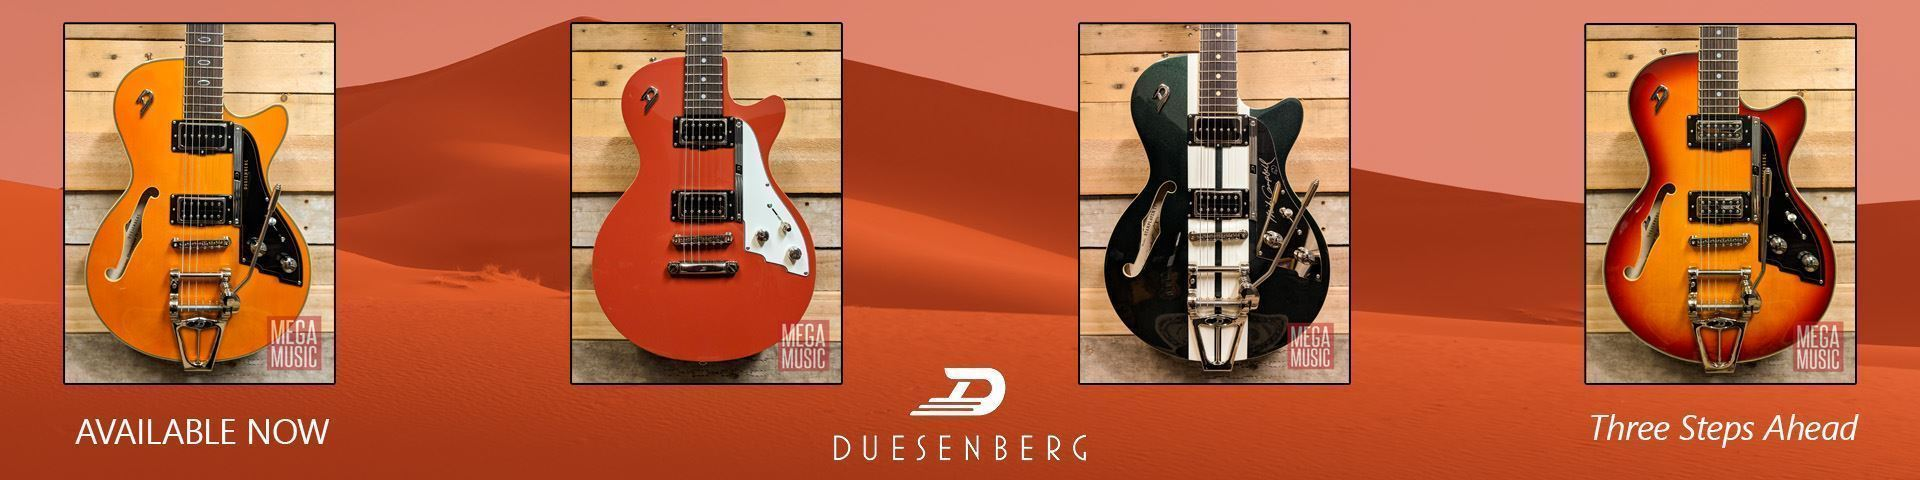 Duesenberg Guitars Now In Stock